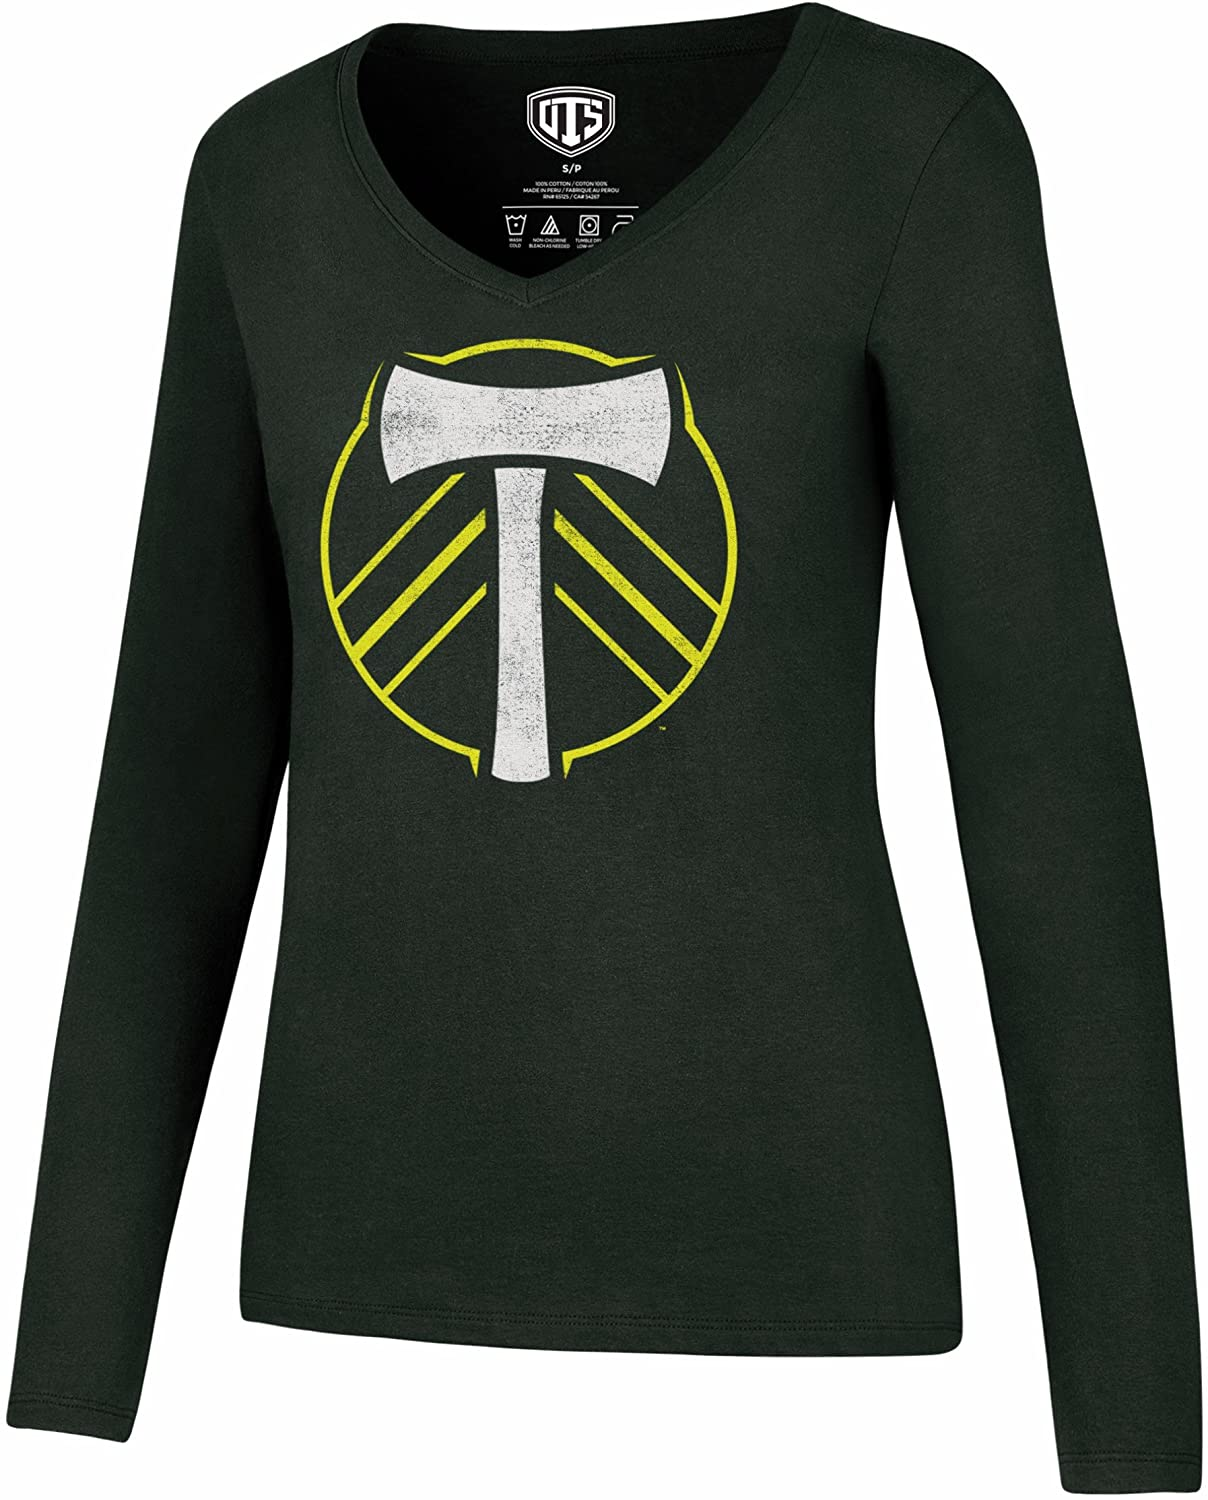 OTS MLS Womens Rival Long Sleeve Tee